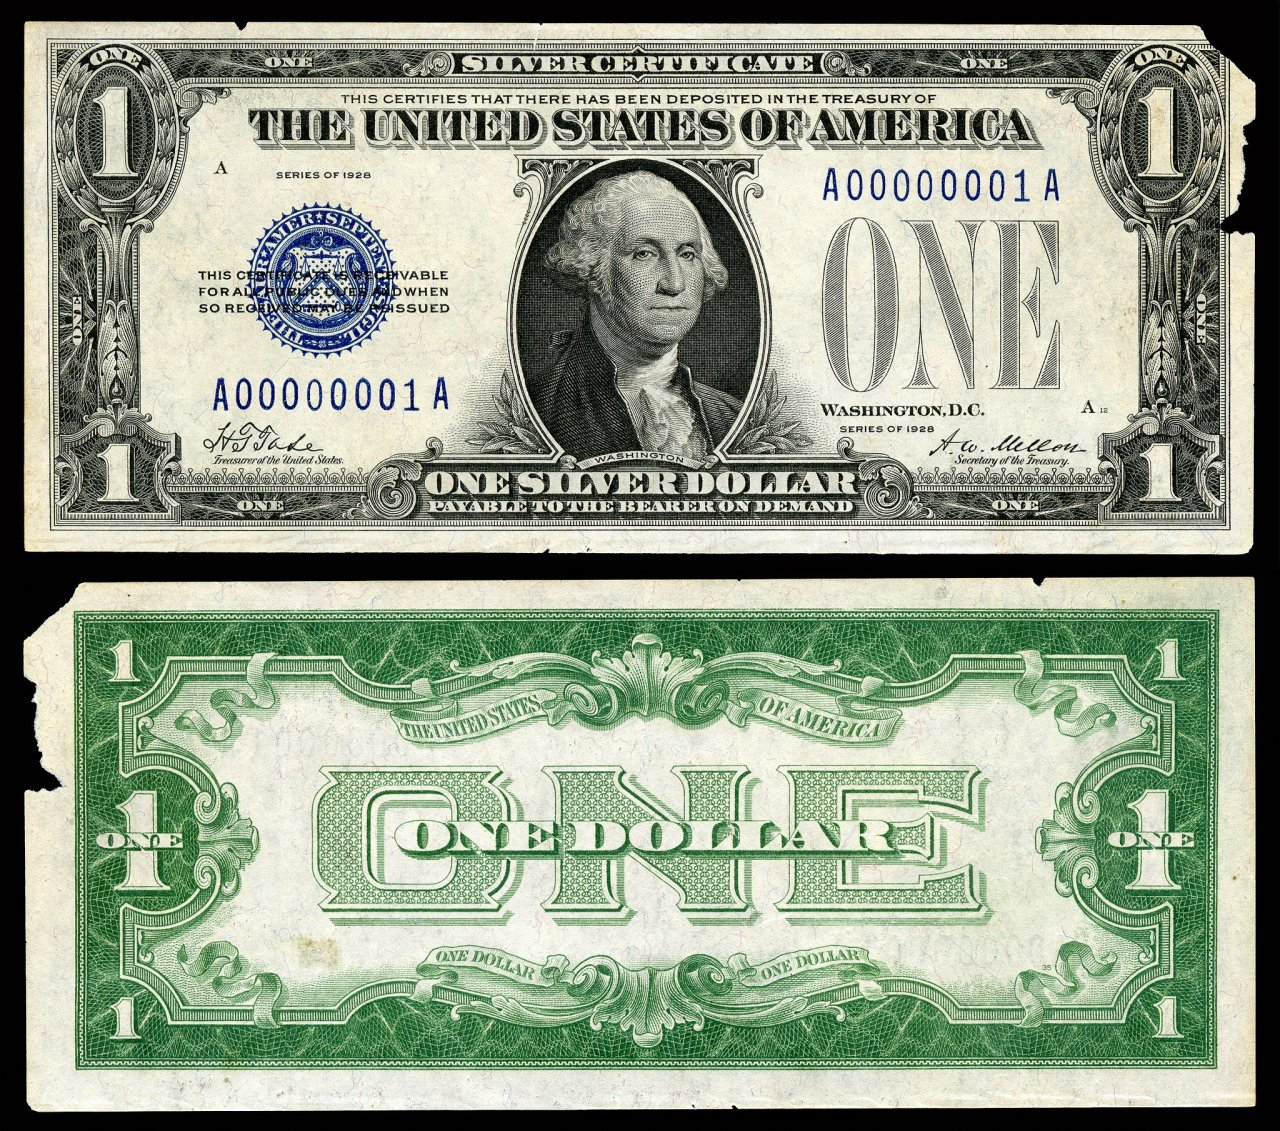 How Much Is A Silver Certificate Worth Artifact Collectors